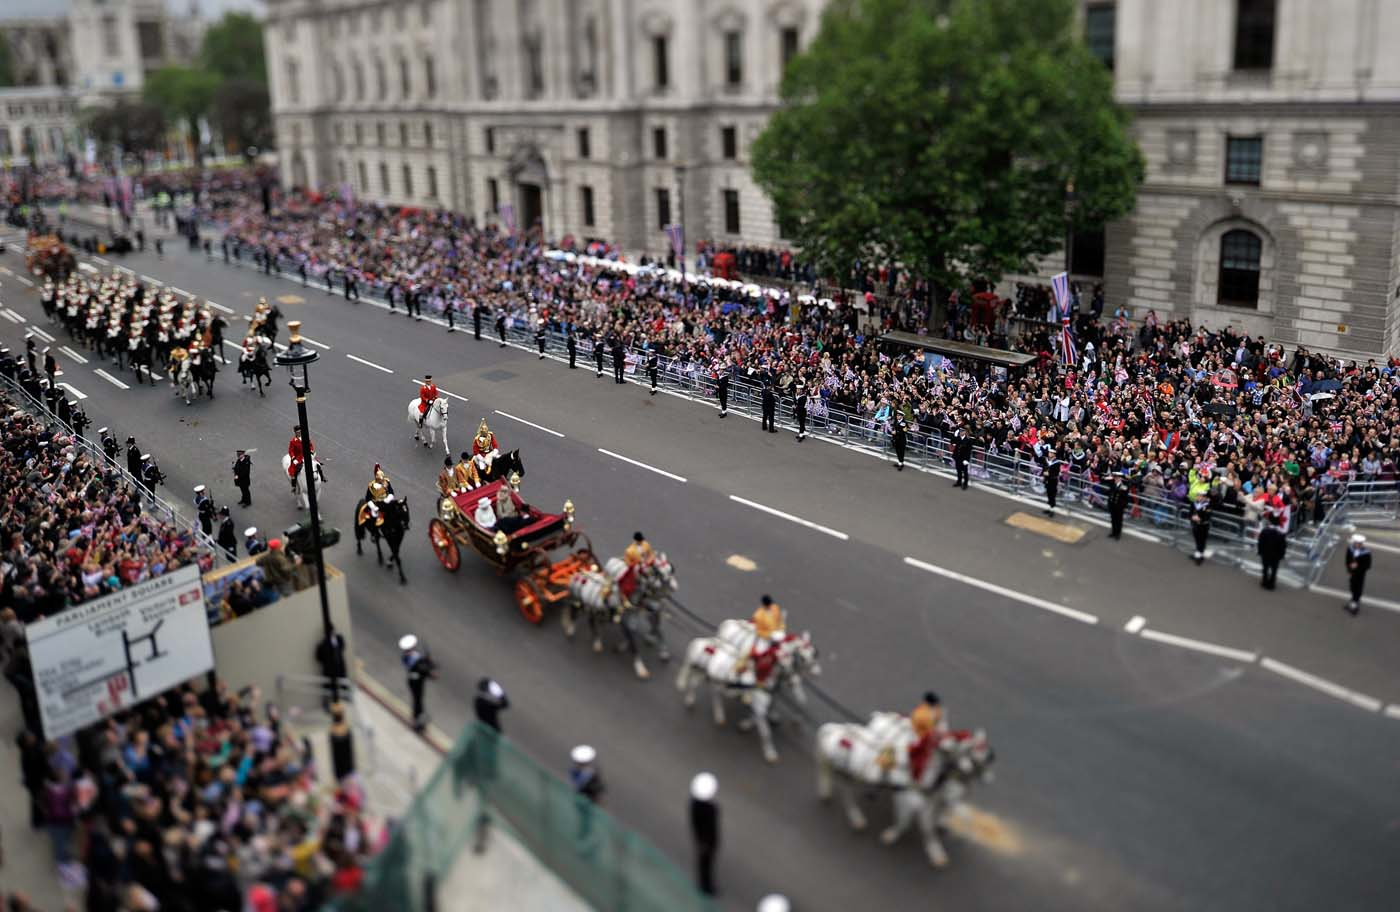 Queen Elizabeth II's Diamond Jubilee concludes with carriage procession, Thanksgiving service